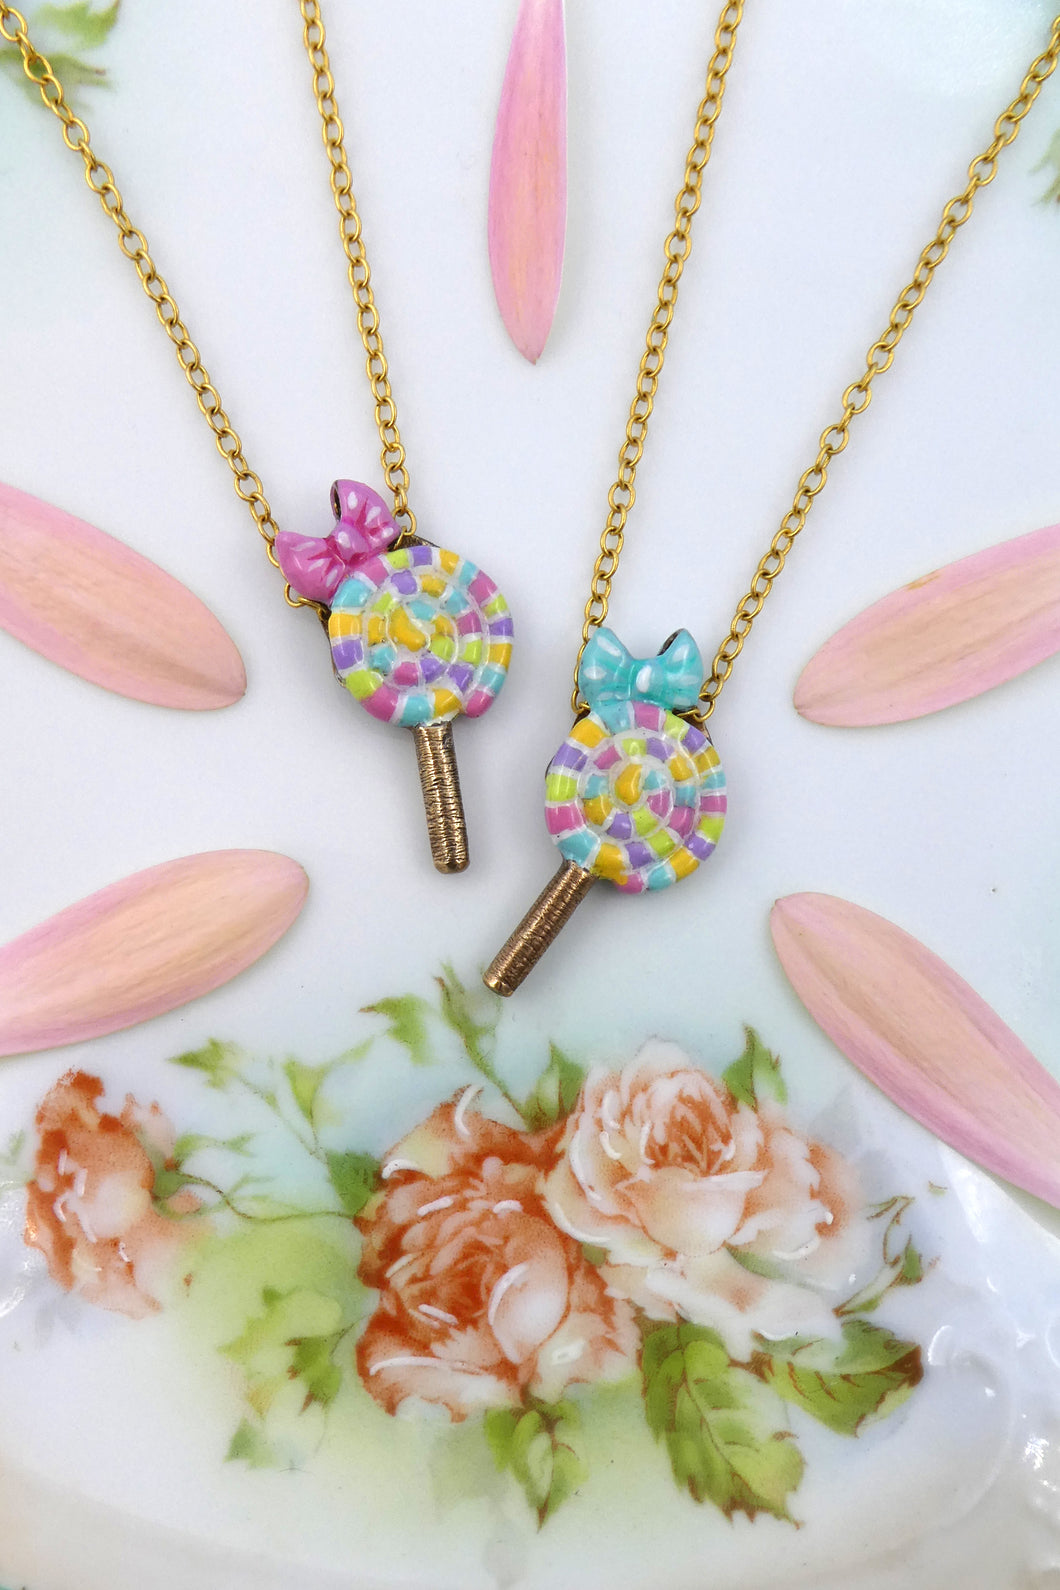 Silver Pastel Rainbow Lollipop Necklaces